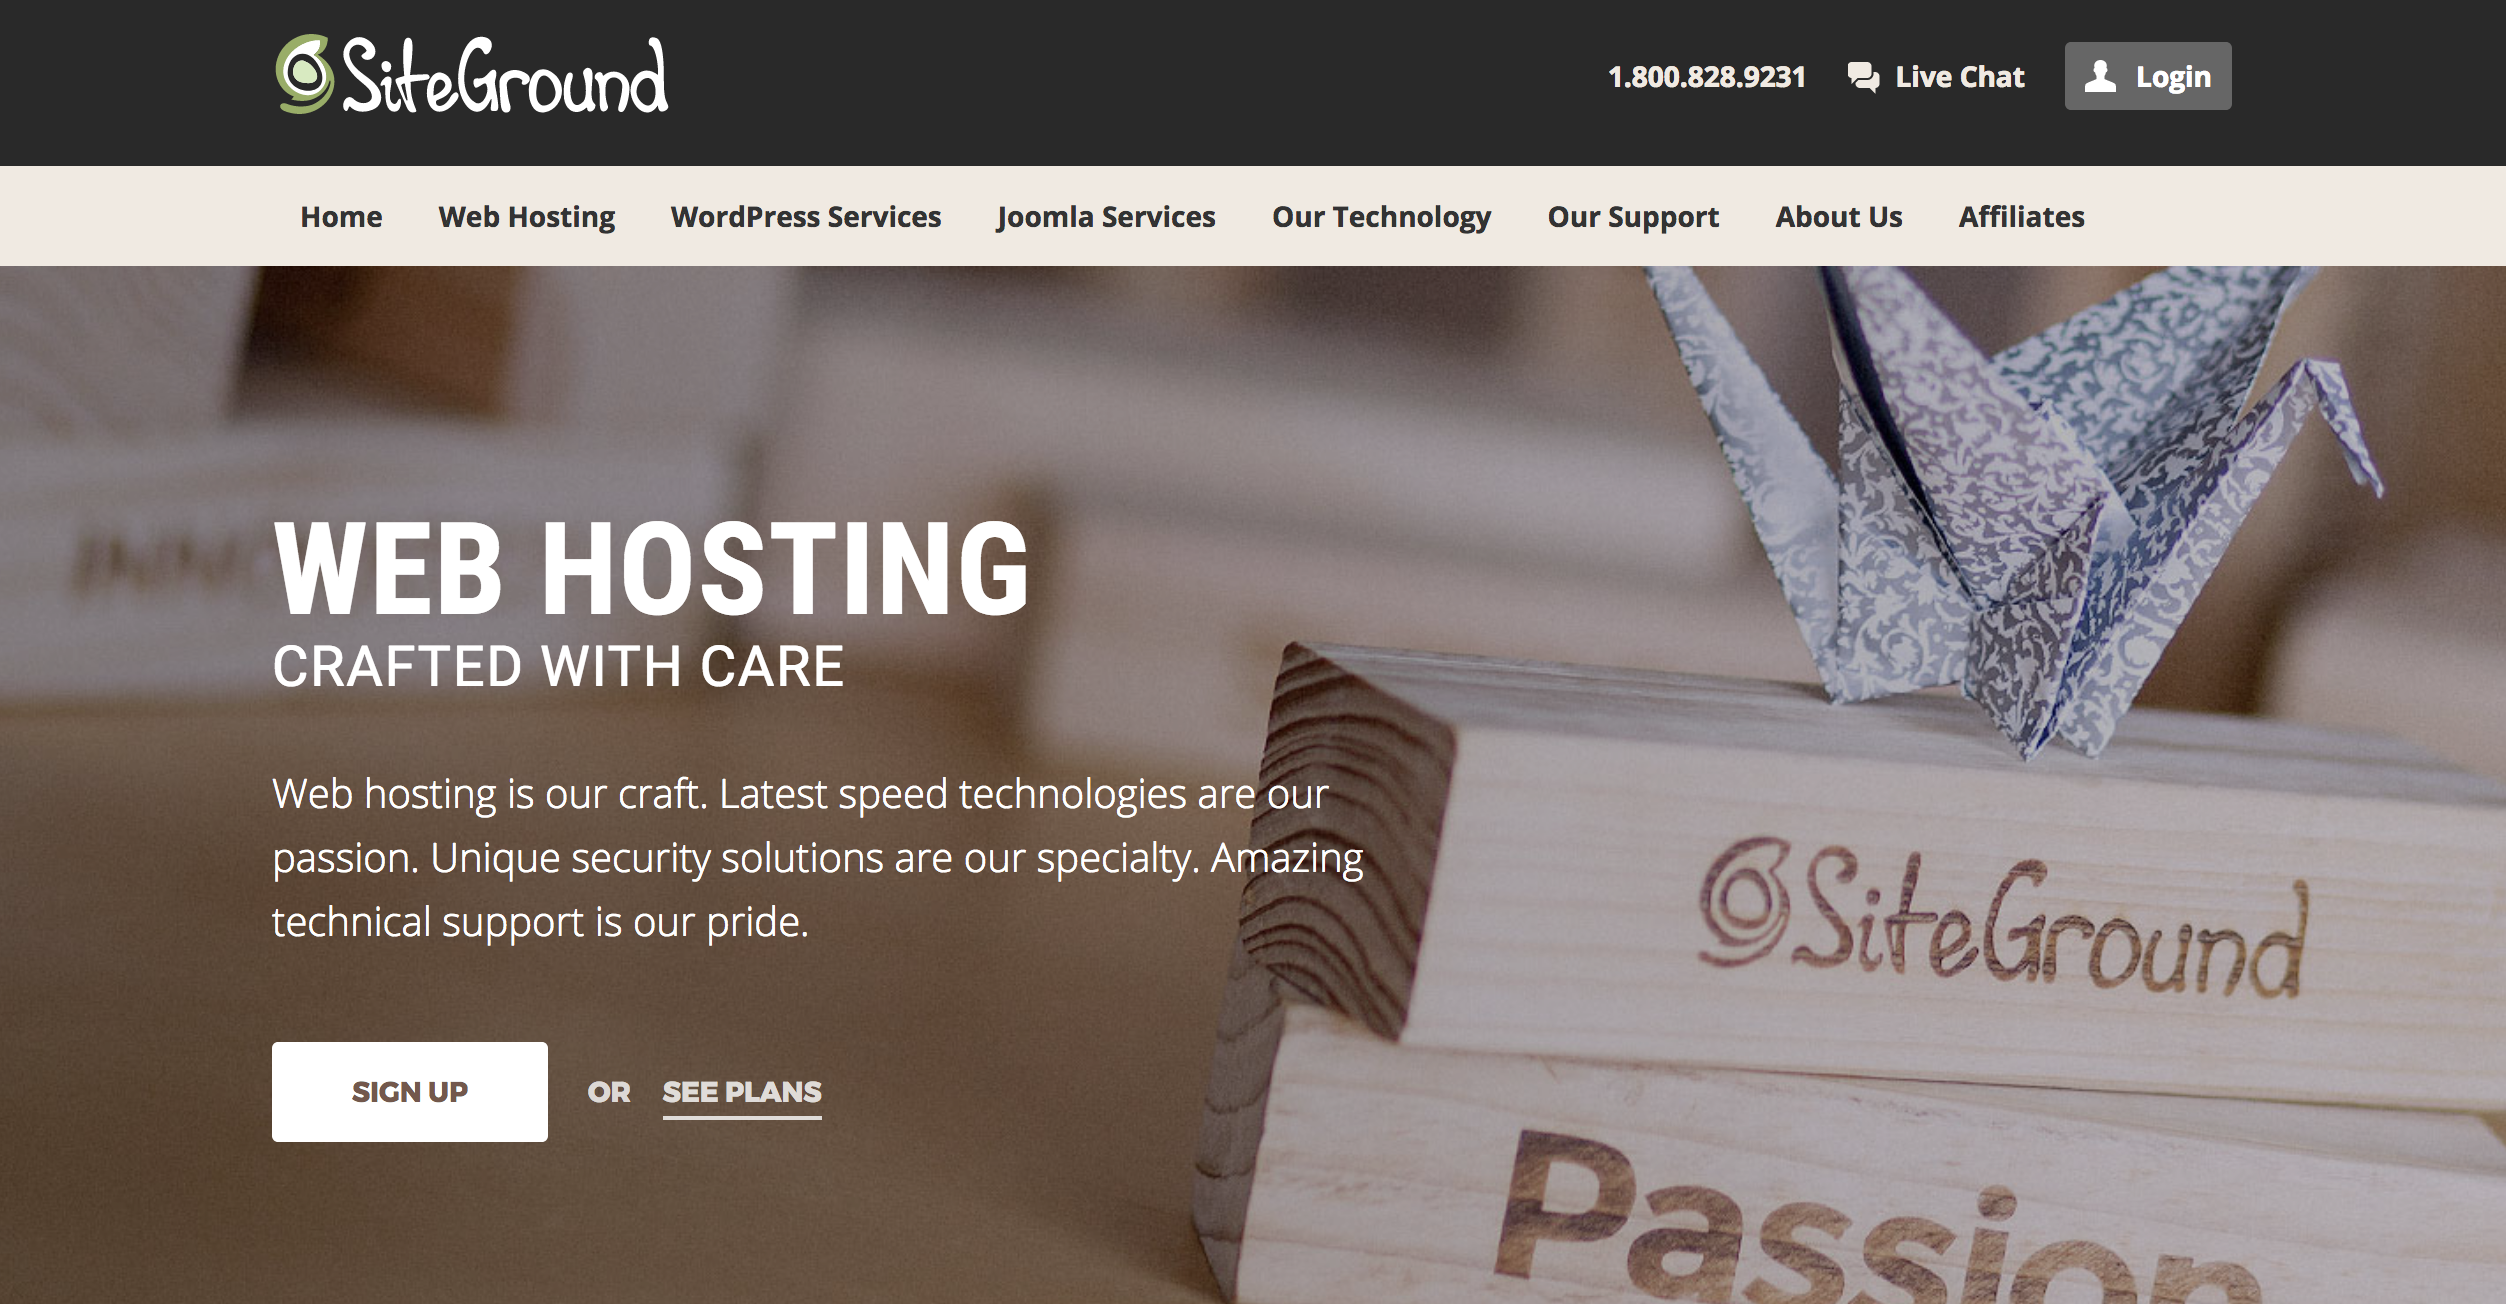 Website Hosting SIteground - How to set up a blog for free